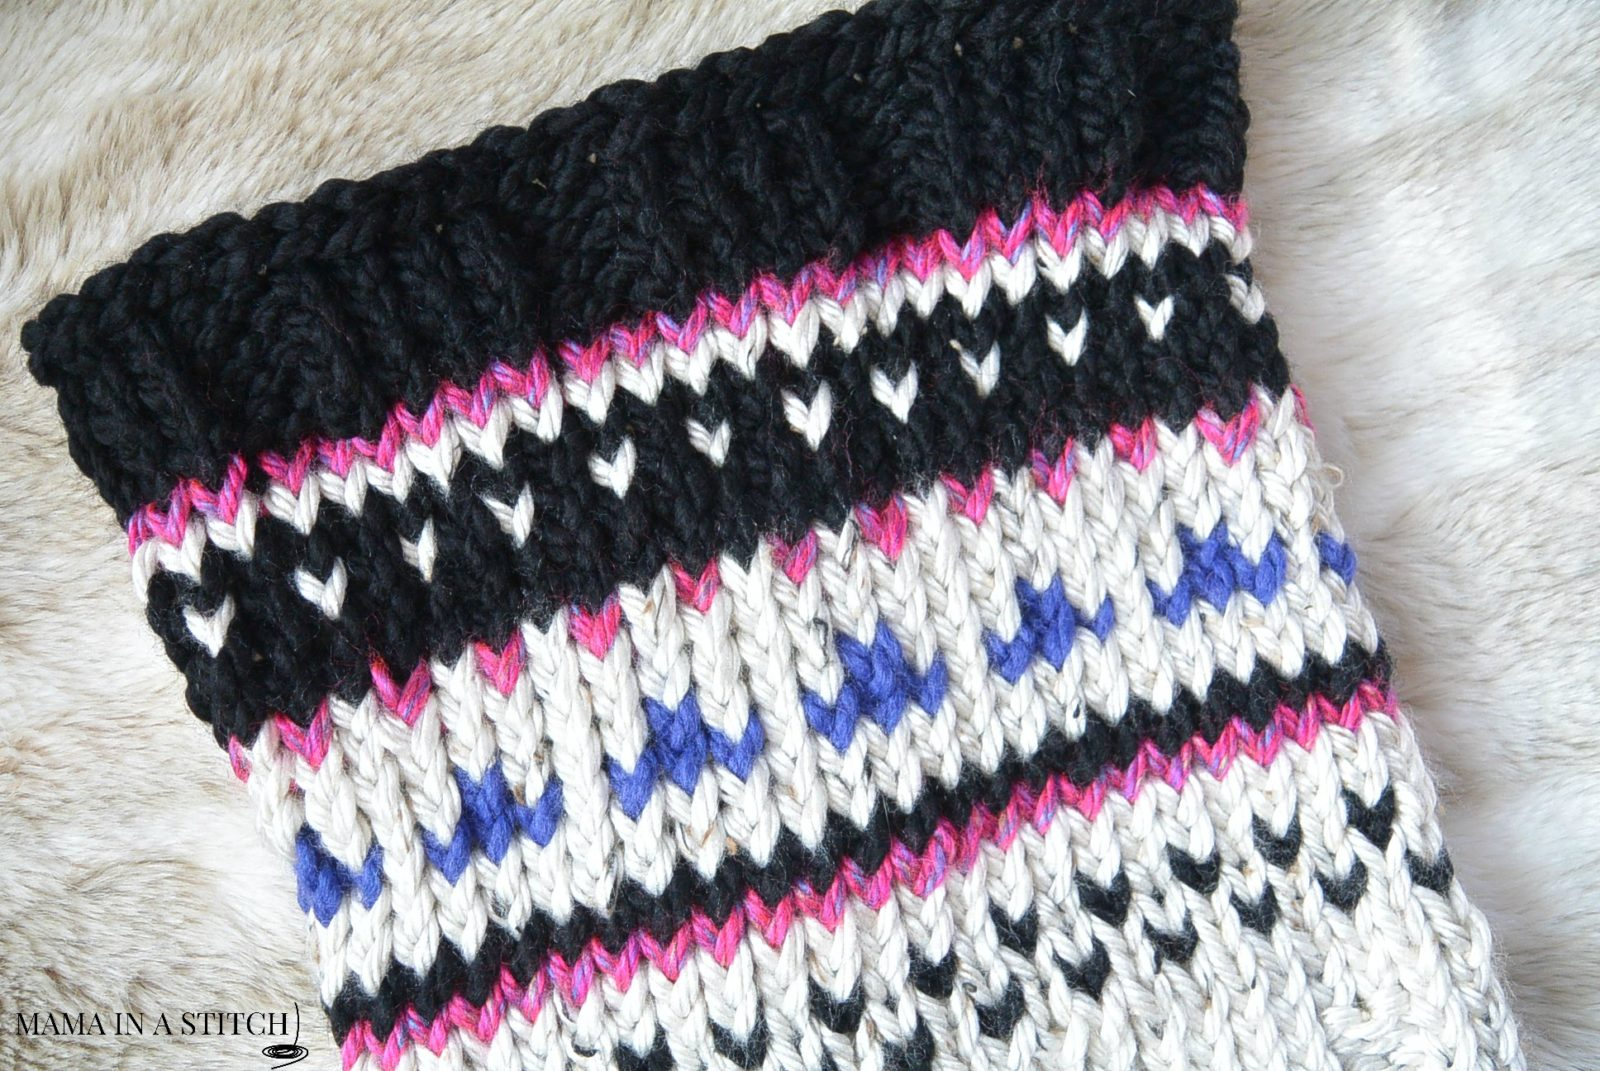 Fair Isle Knitting In The Round : Alpine heights knit fair isle cowl mama in a stitch